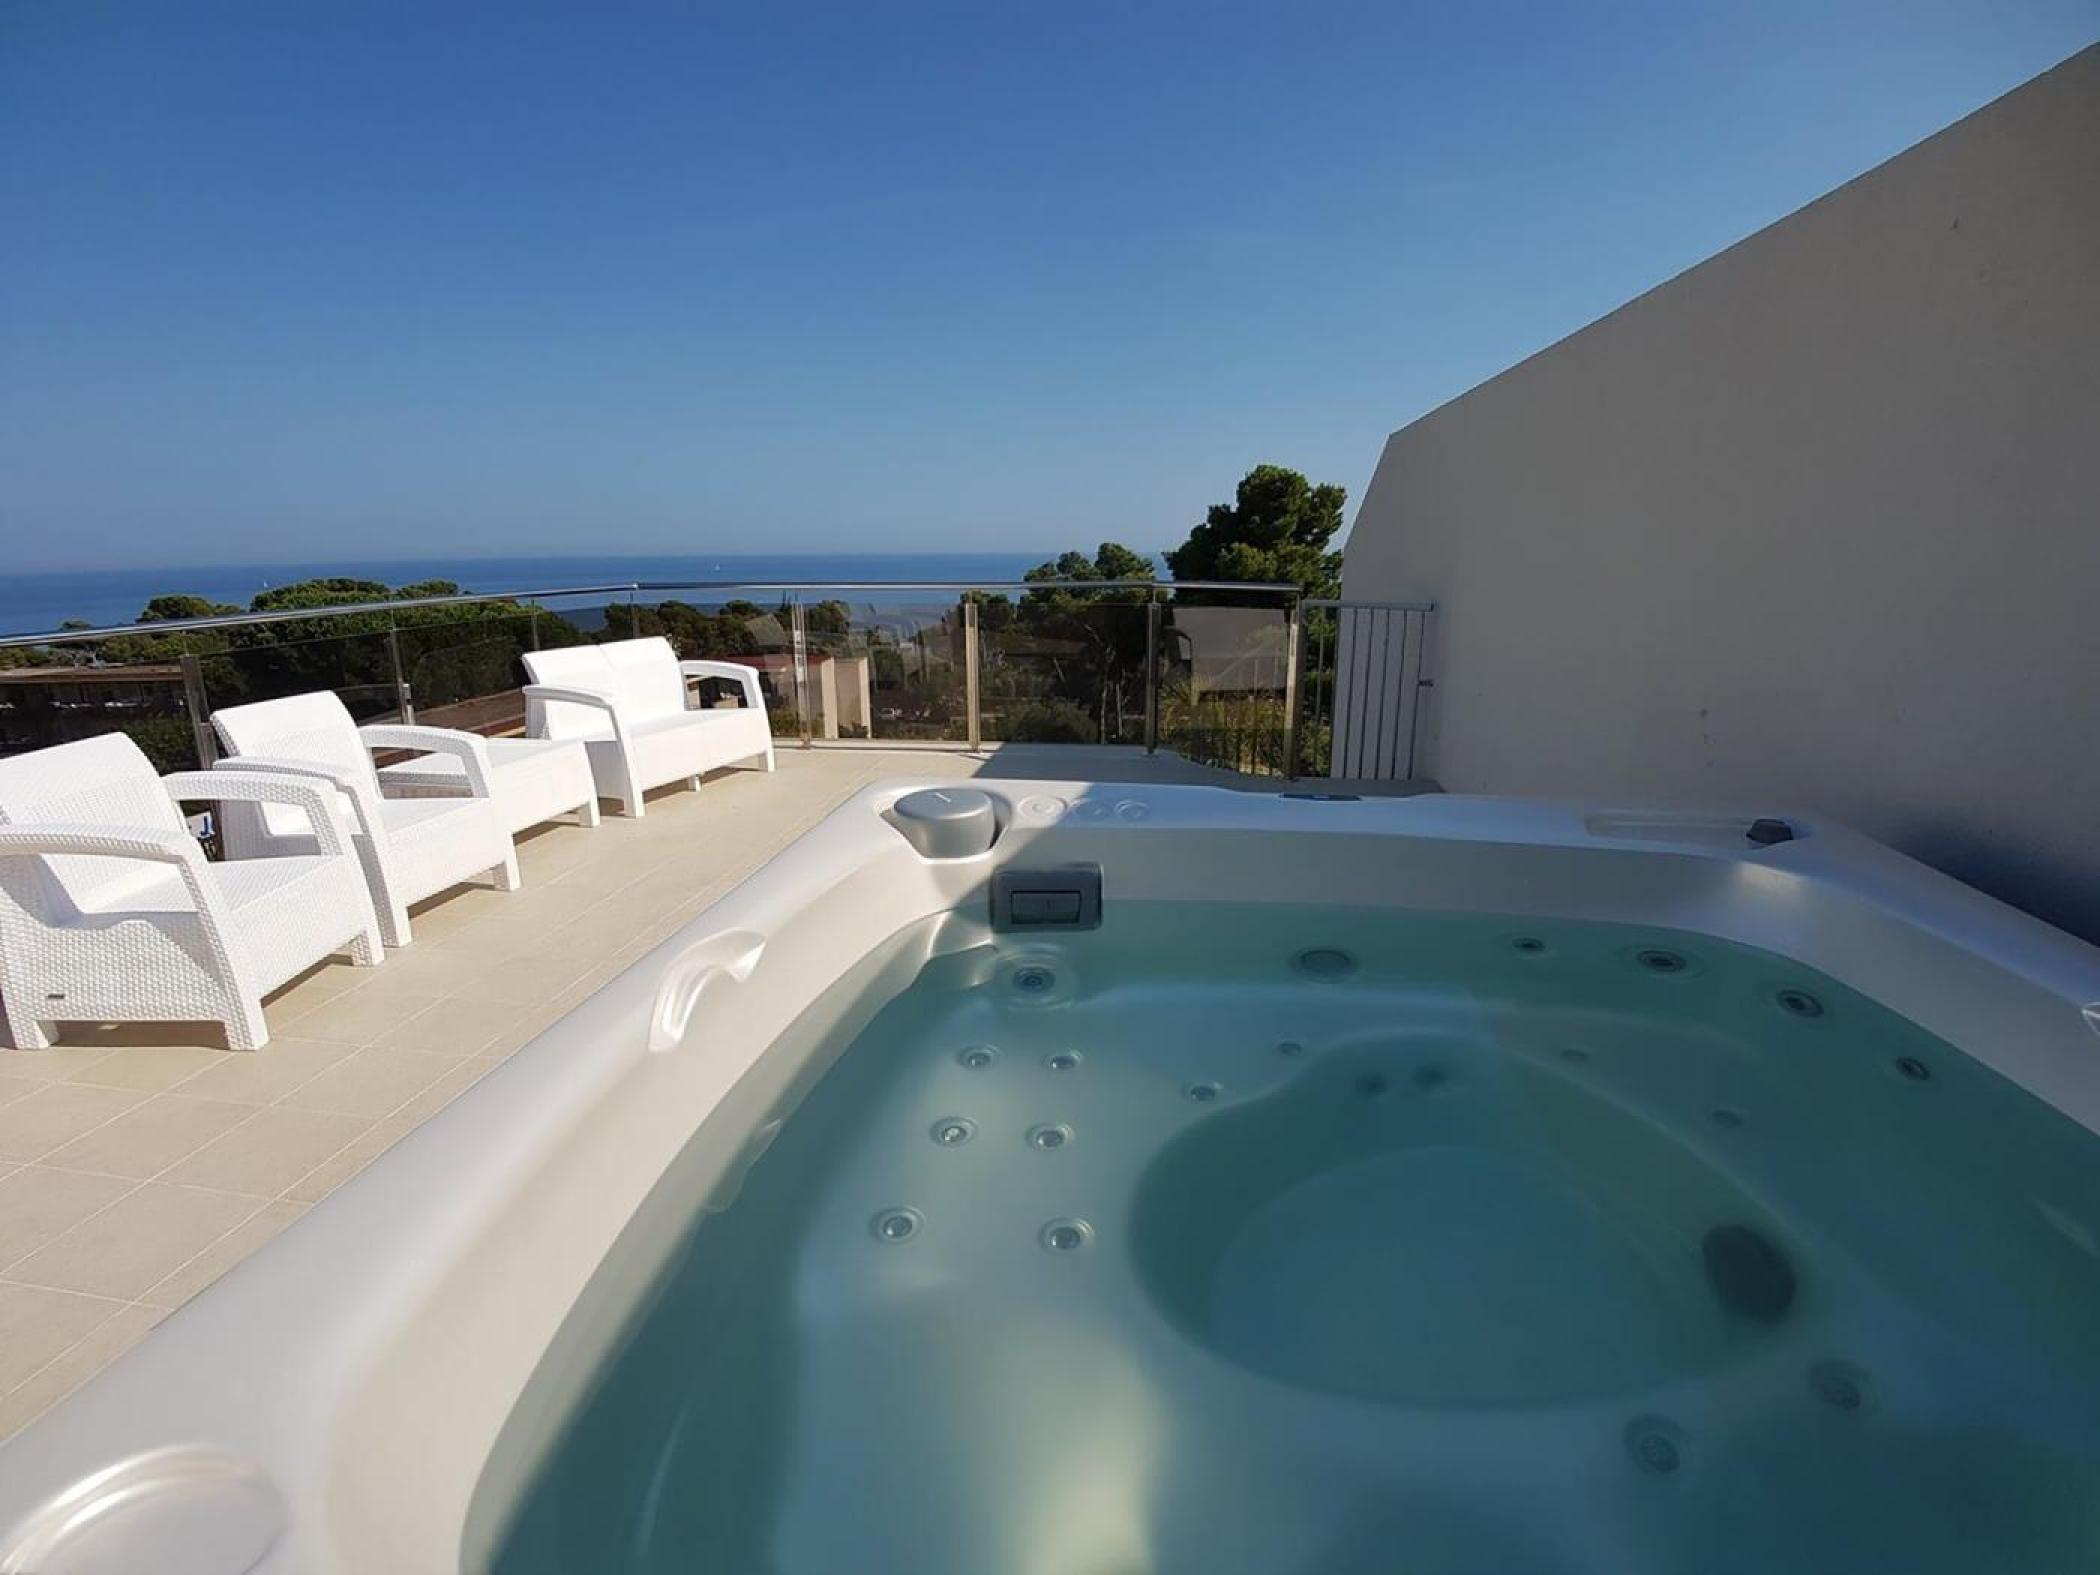 Rent Villa with Swimming pool in Platja d'Aro - Girorooms Travel Calma Holiday Villas jacuzzi 11 - 25